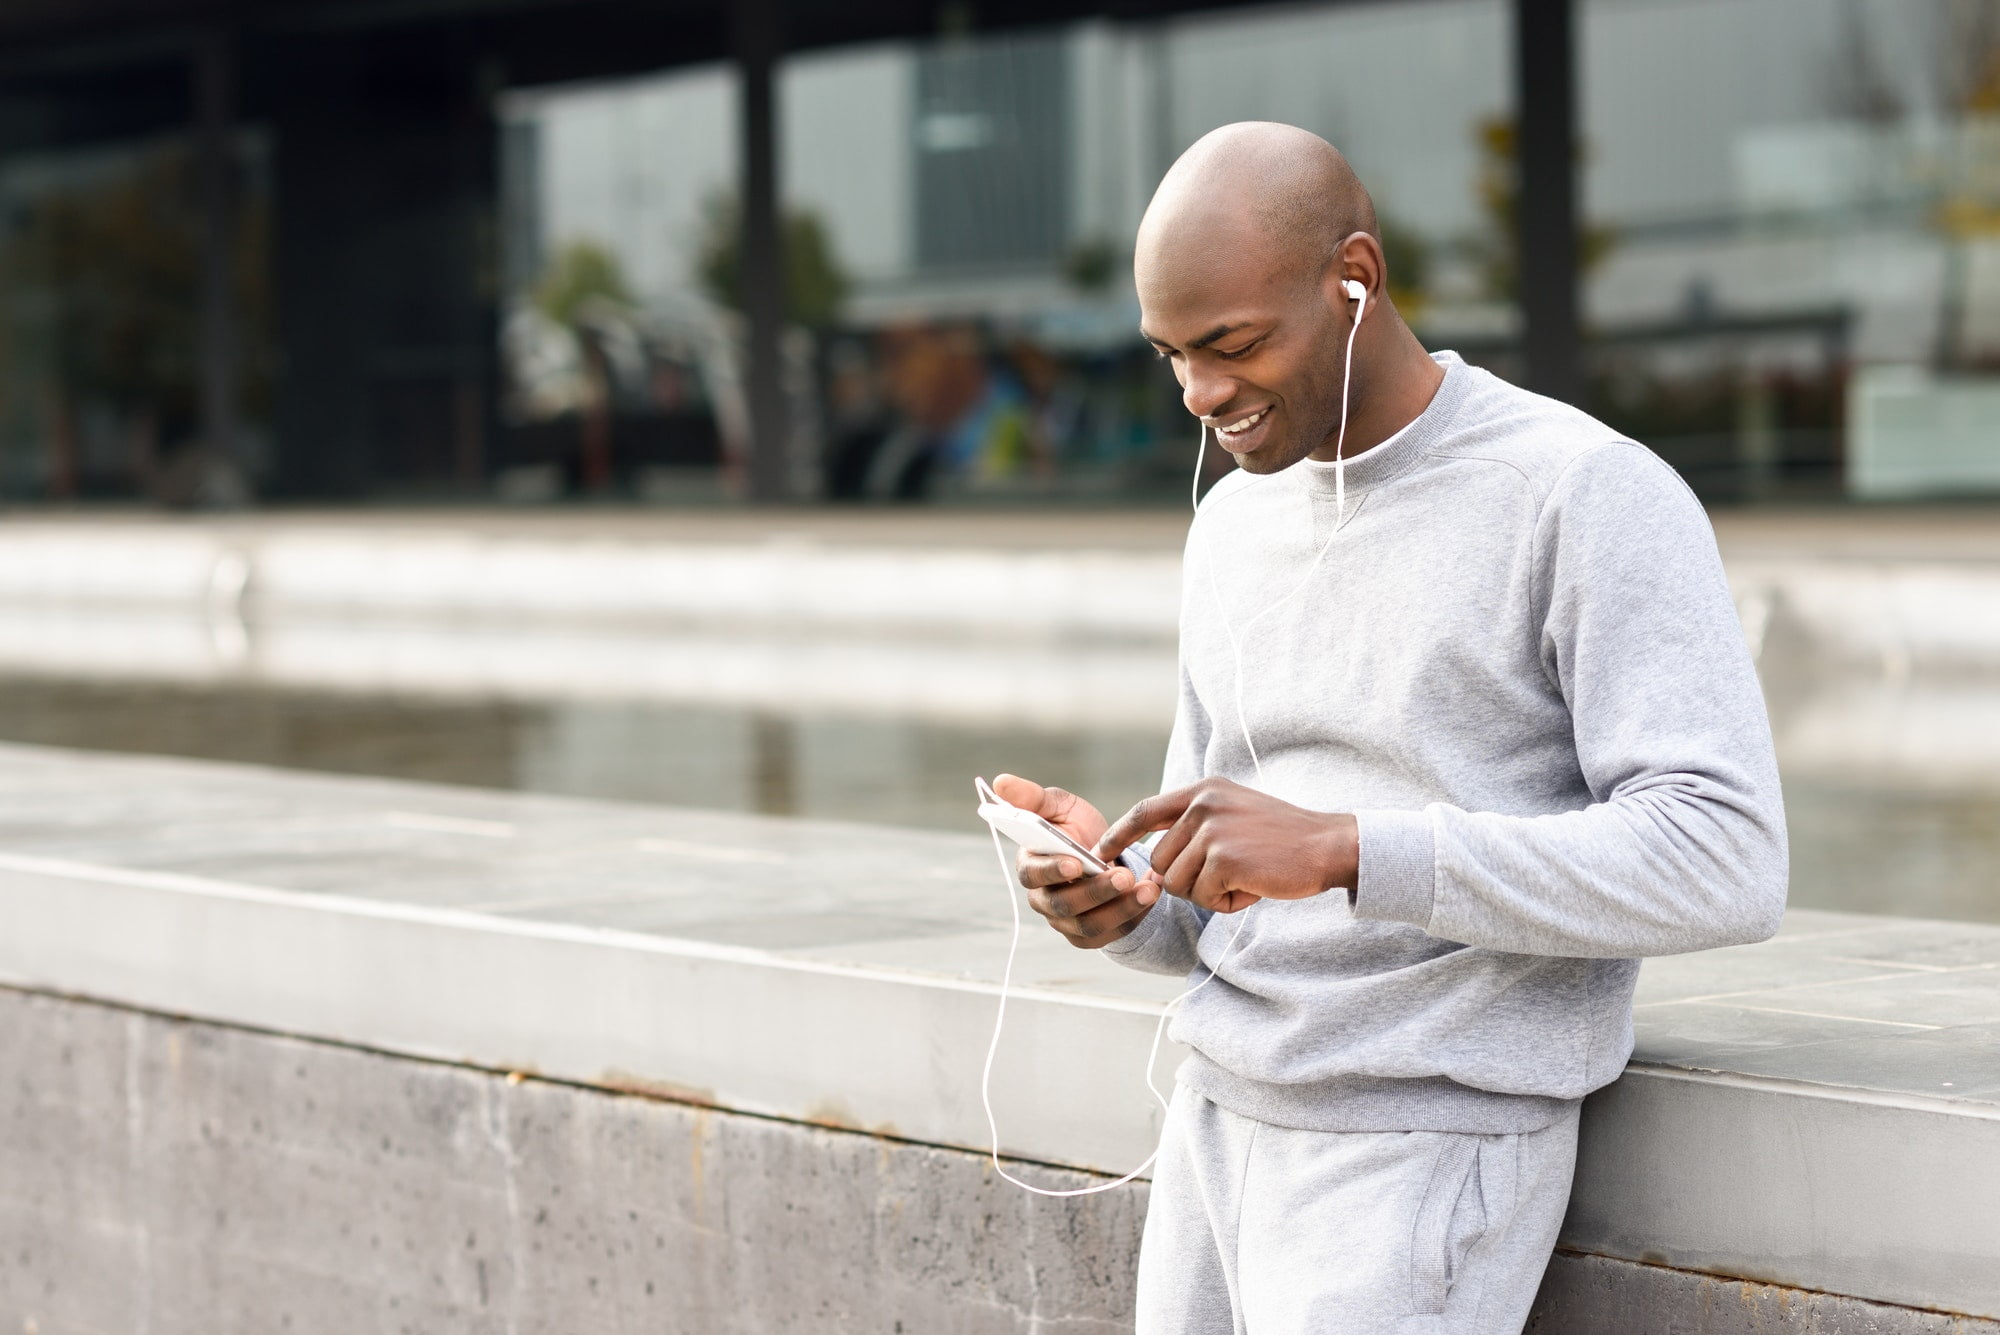 Attractive black man listening to music with headphones in urban